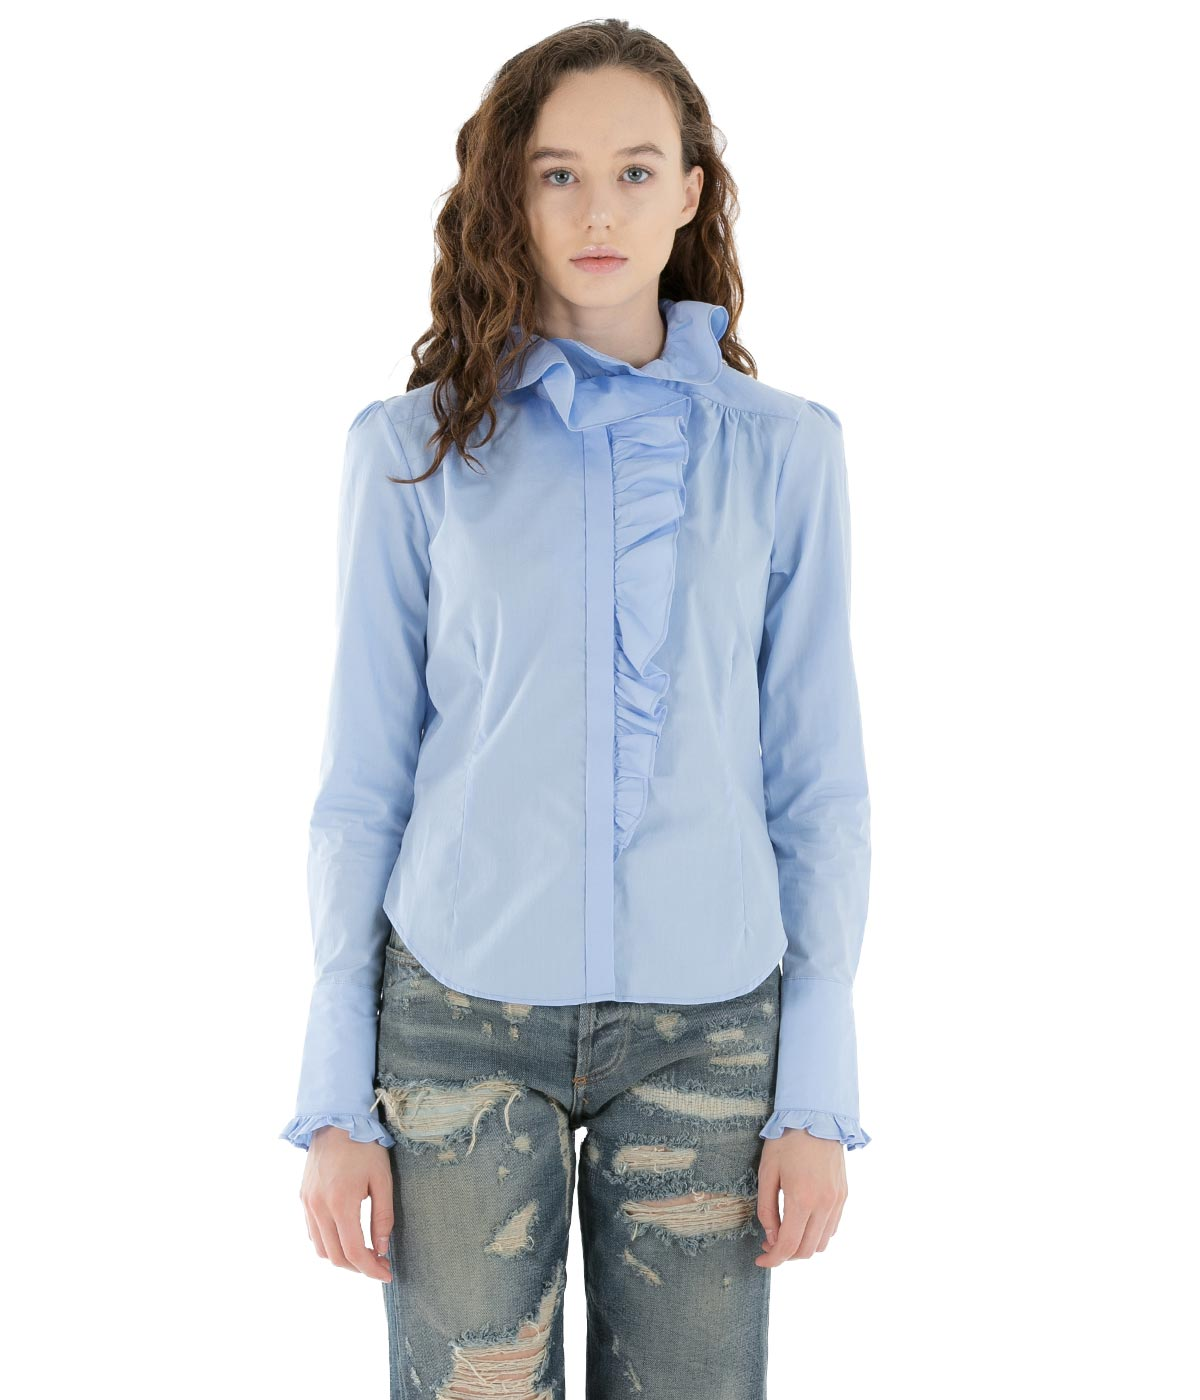 Light Blue Ruffle Shirt